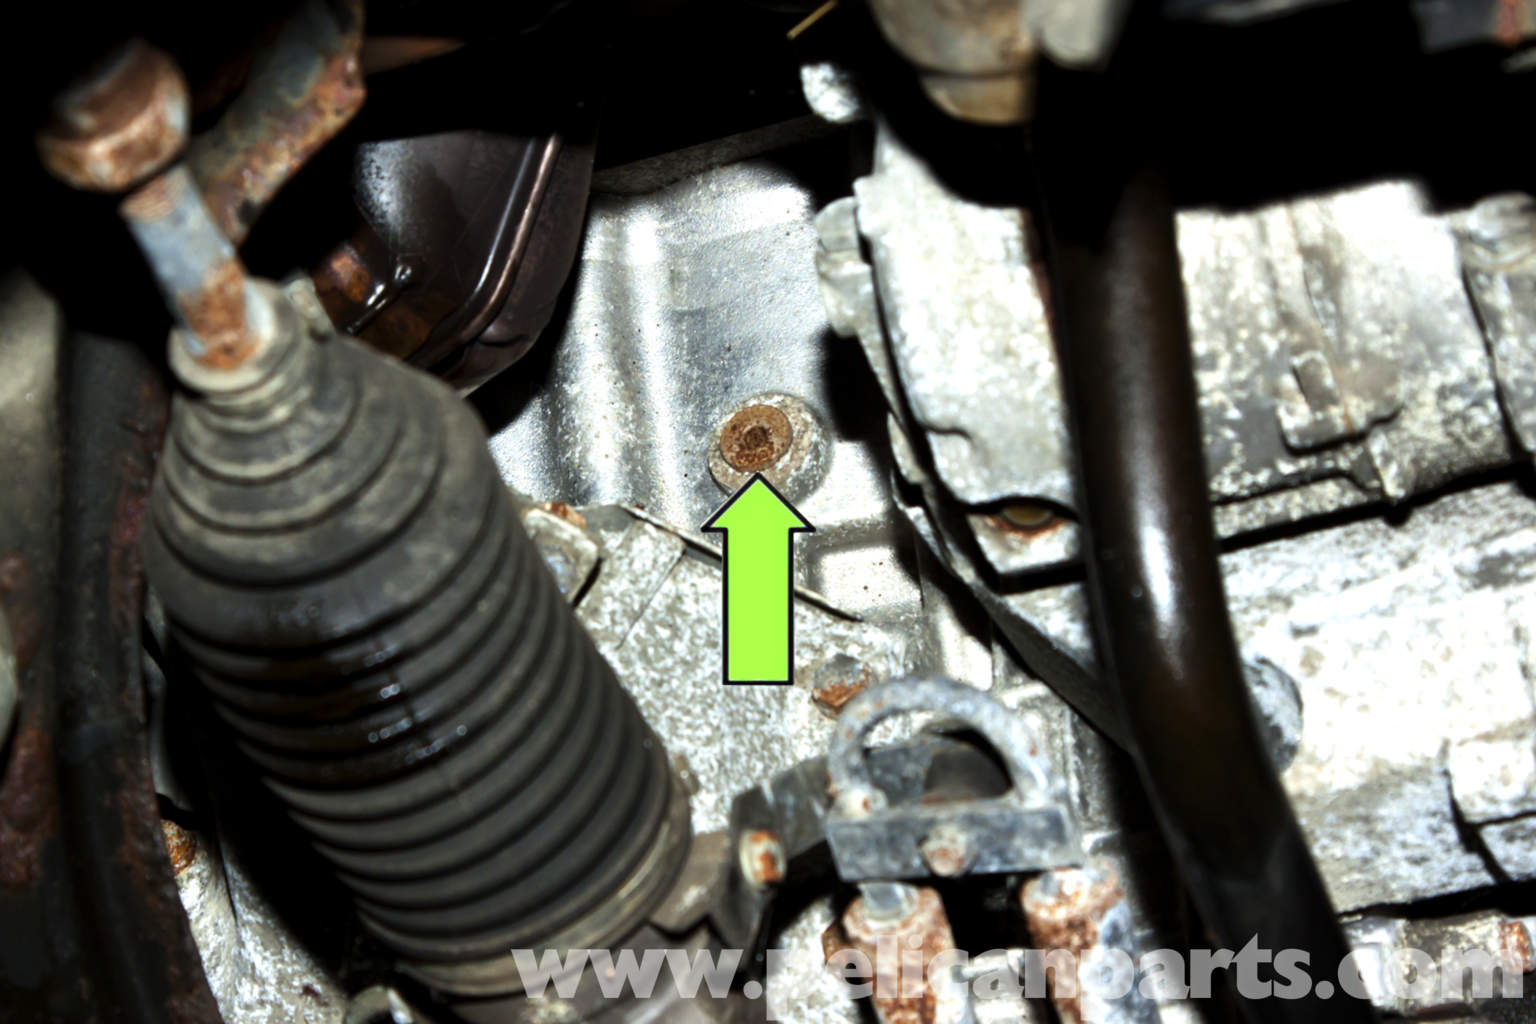 5 3 Engine Block Coolant Drain Plugs 5 Free Engine Image For User Manual Download